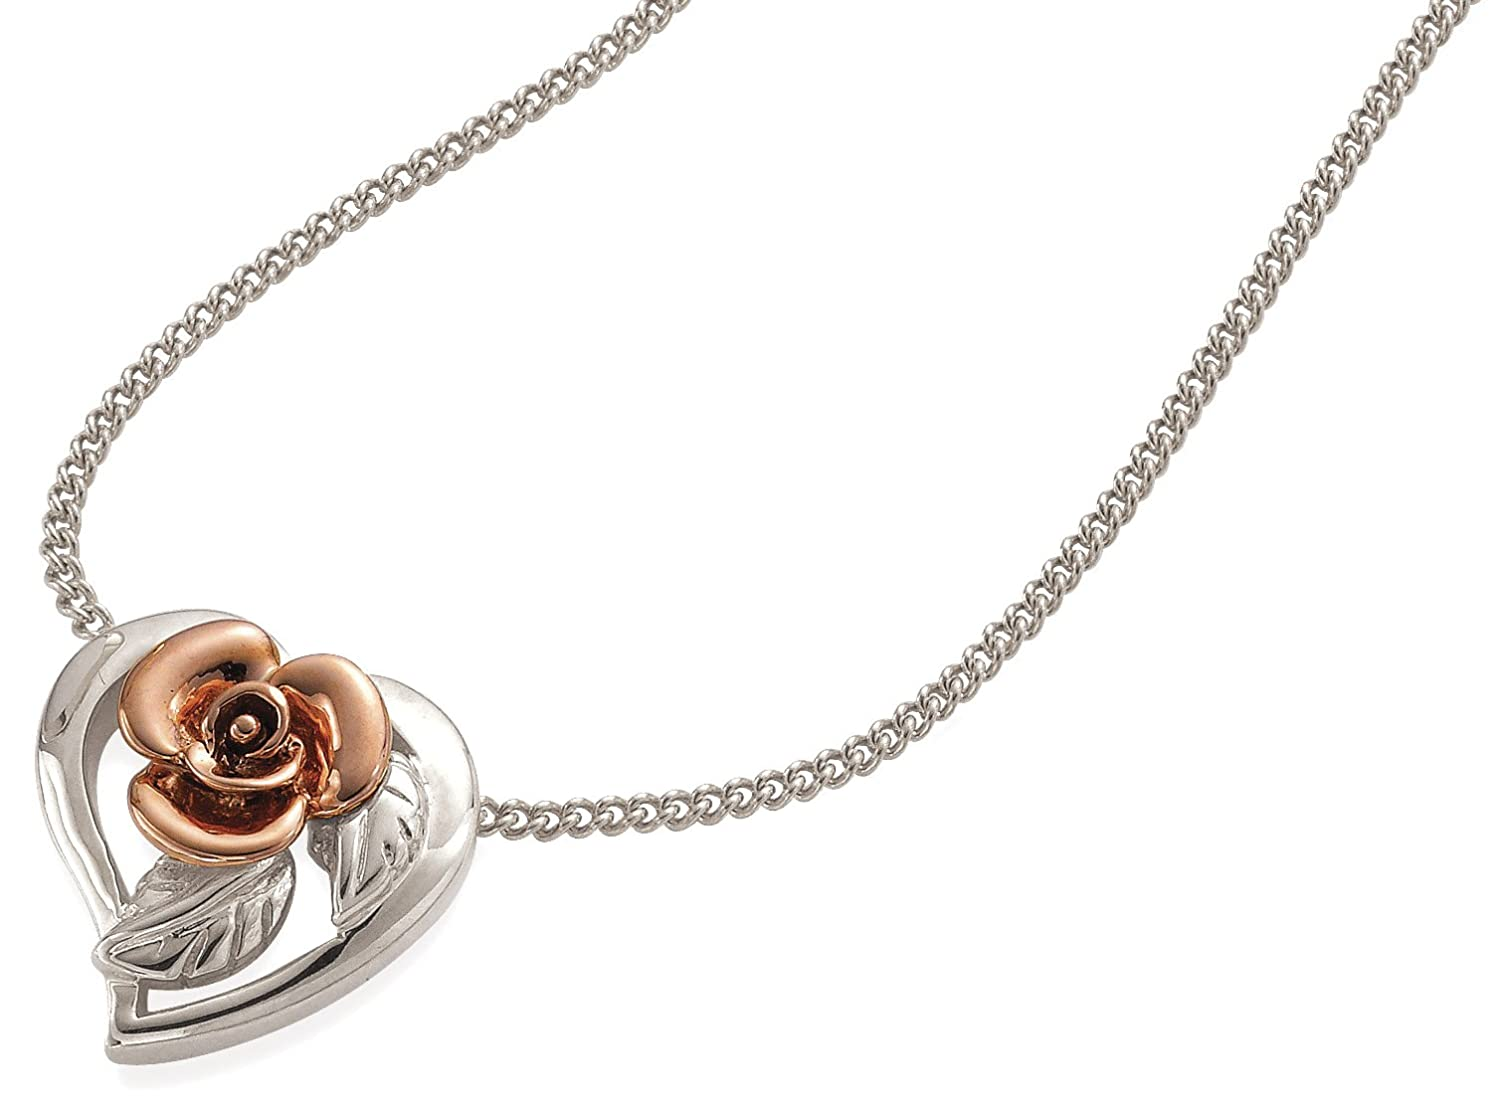 Clogau gold silver rose gold royal roses pendant amazon clogau gold silver rose gold royal roses pendant amazon jewellery mozeypictures Images